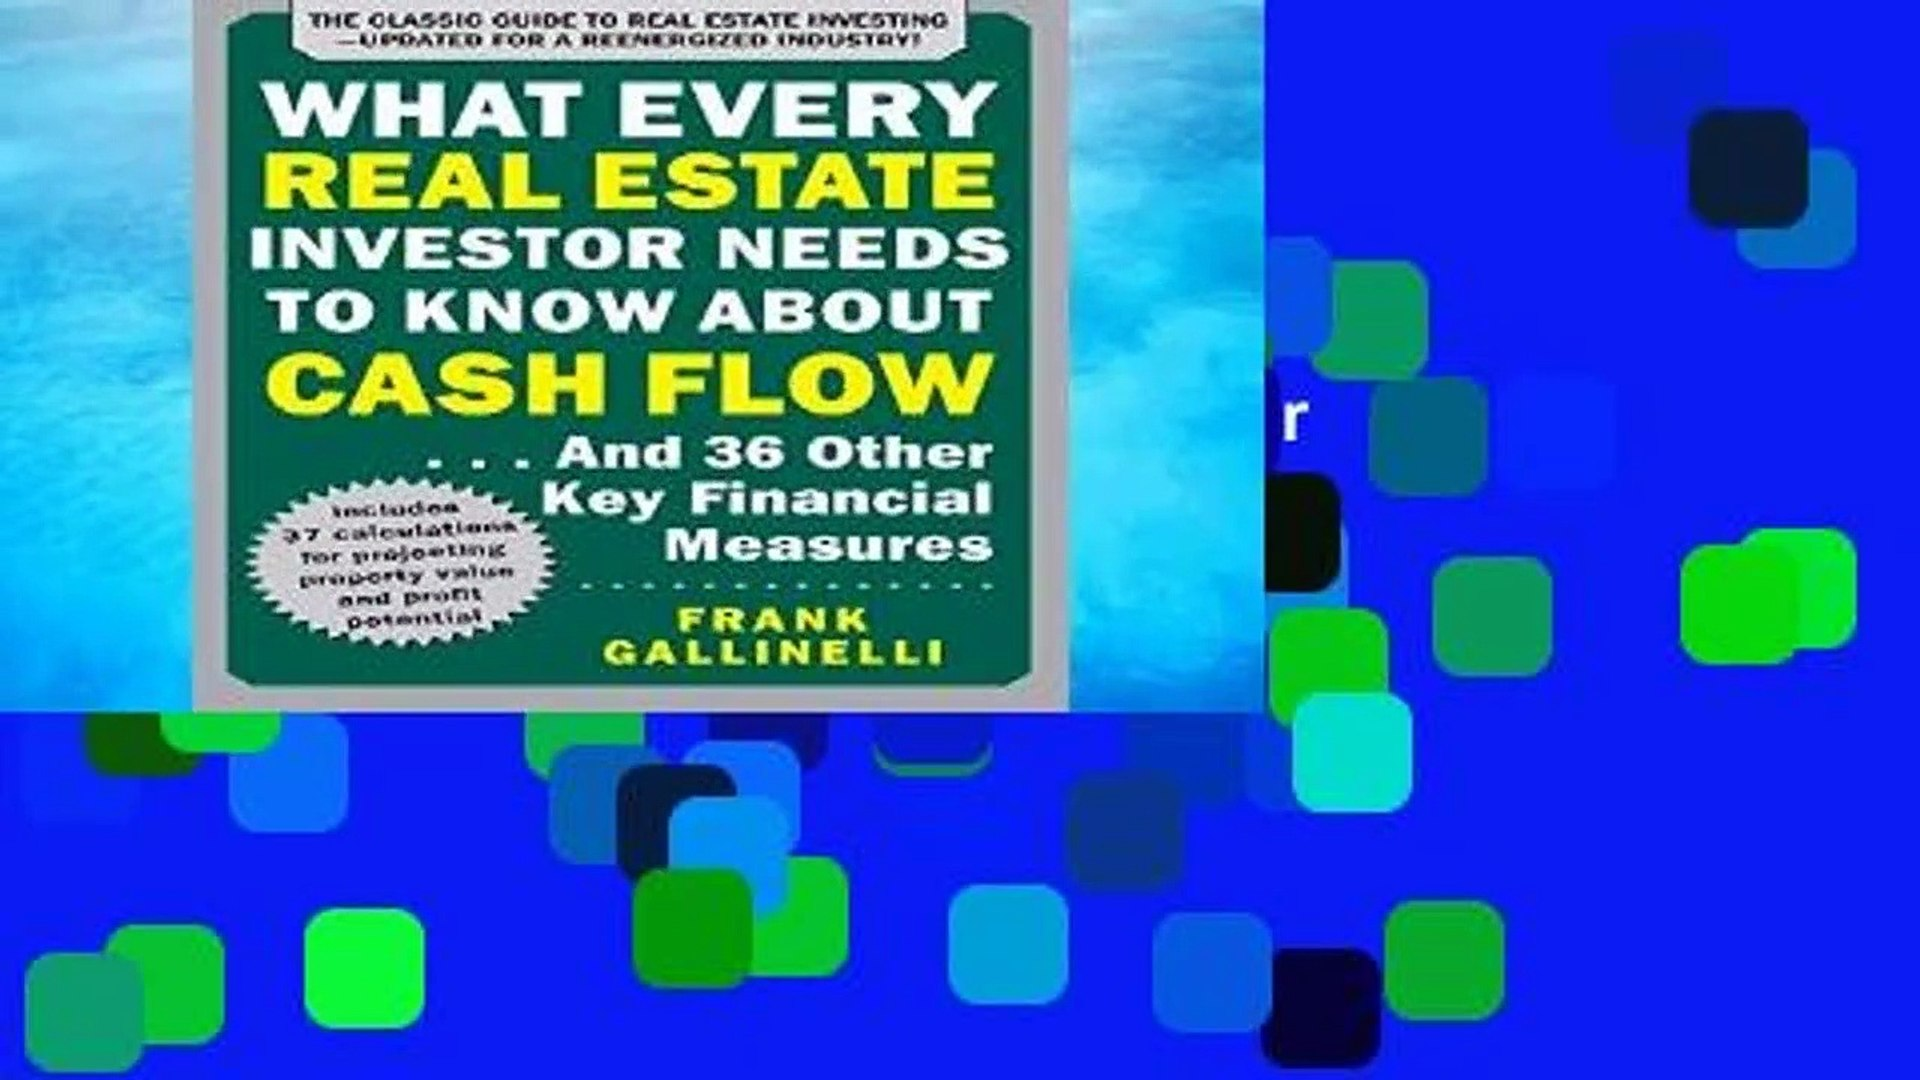 R.E.A.D What Every Real Estate Investor Needs to Know About Cash Flow... And 36 Other Key